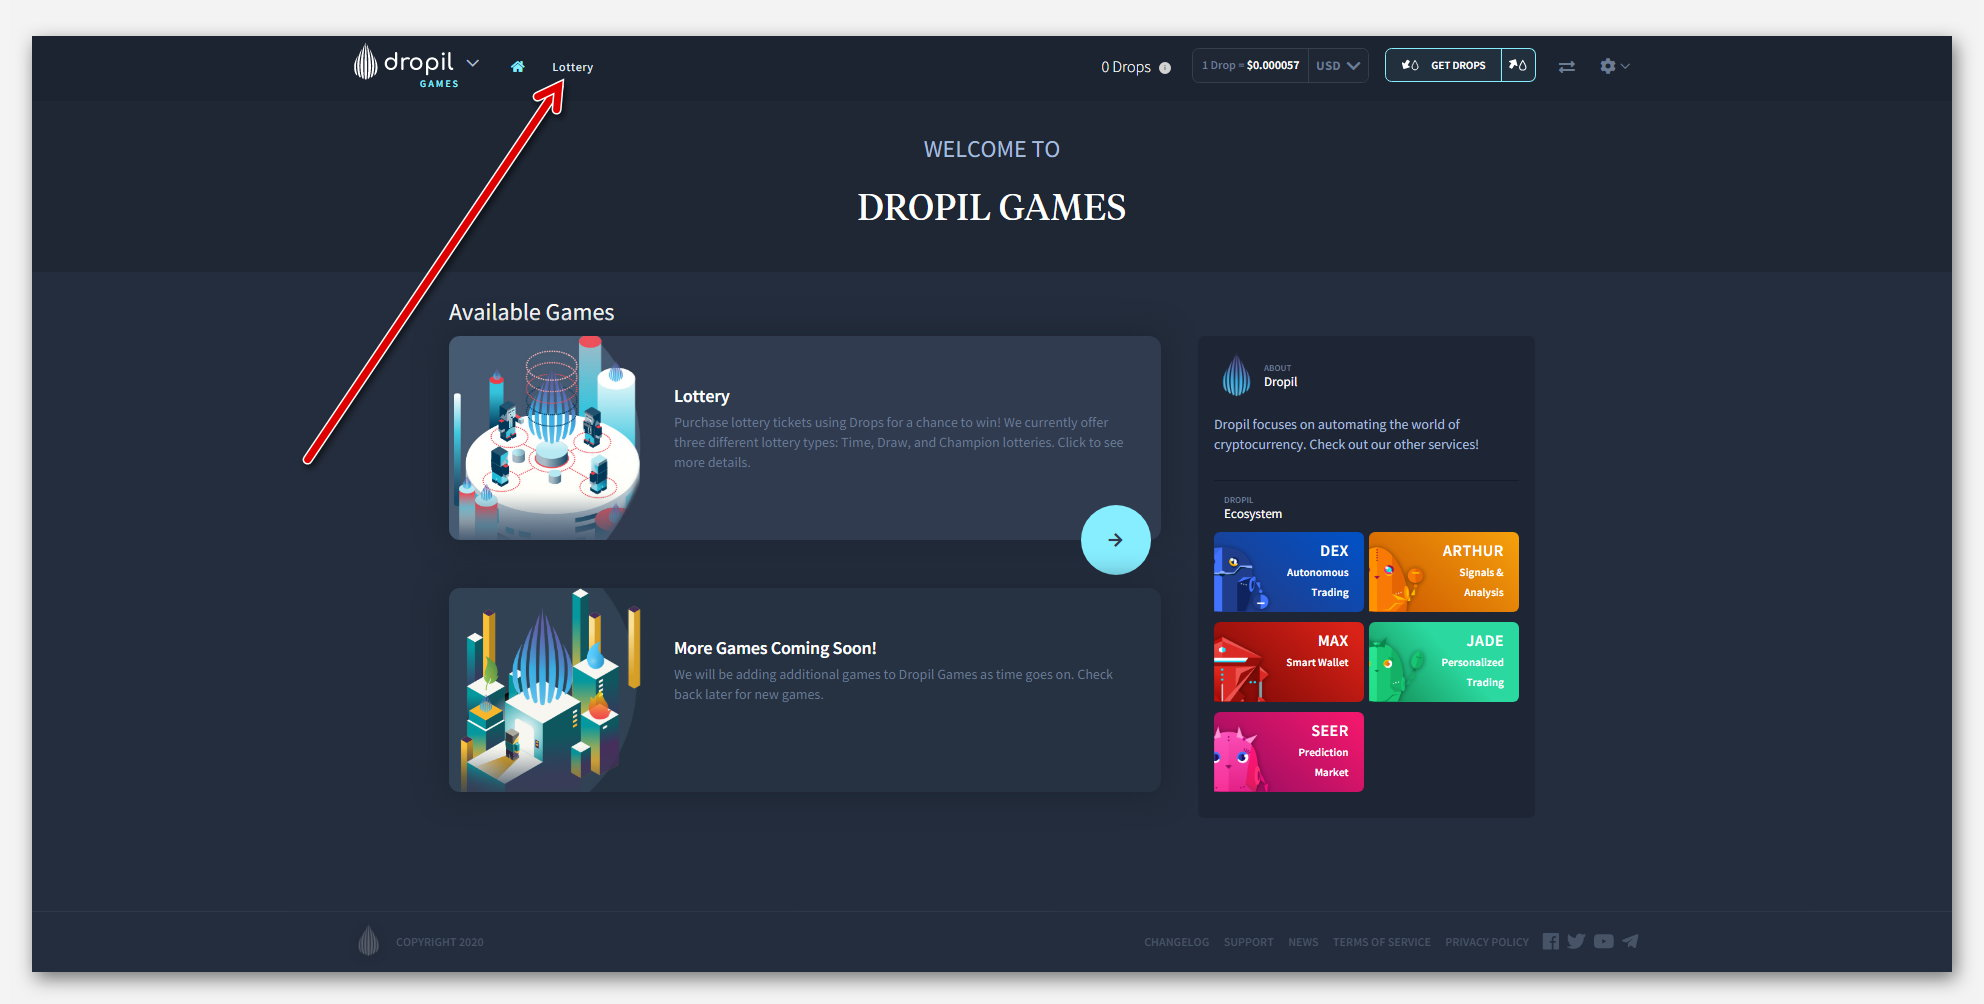 Домашняя страница, в проекте Dropil Games, от компании Dropil